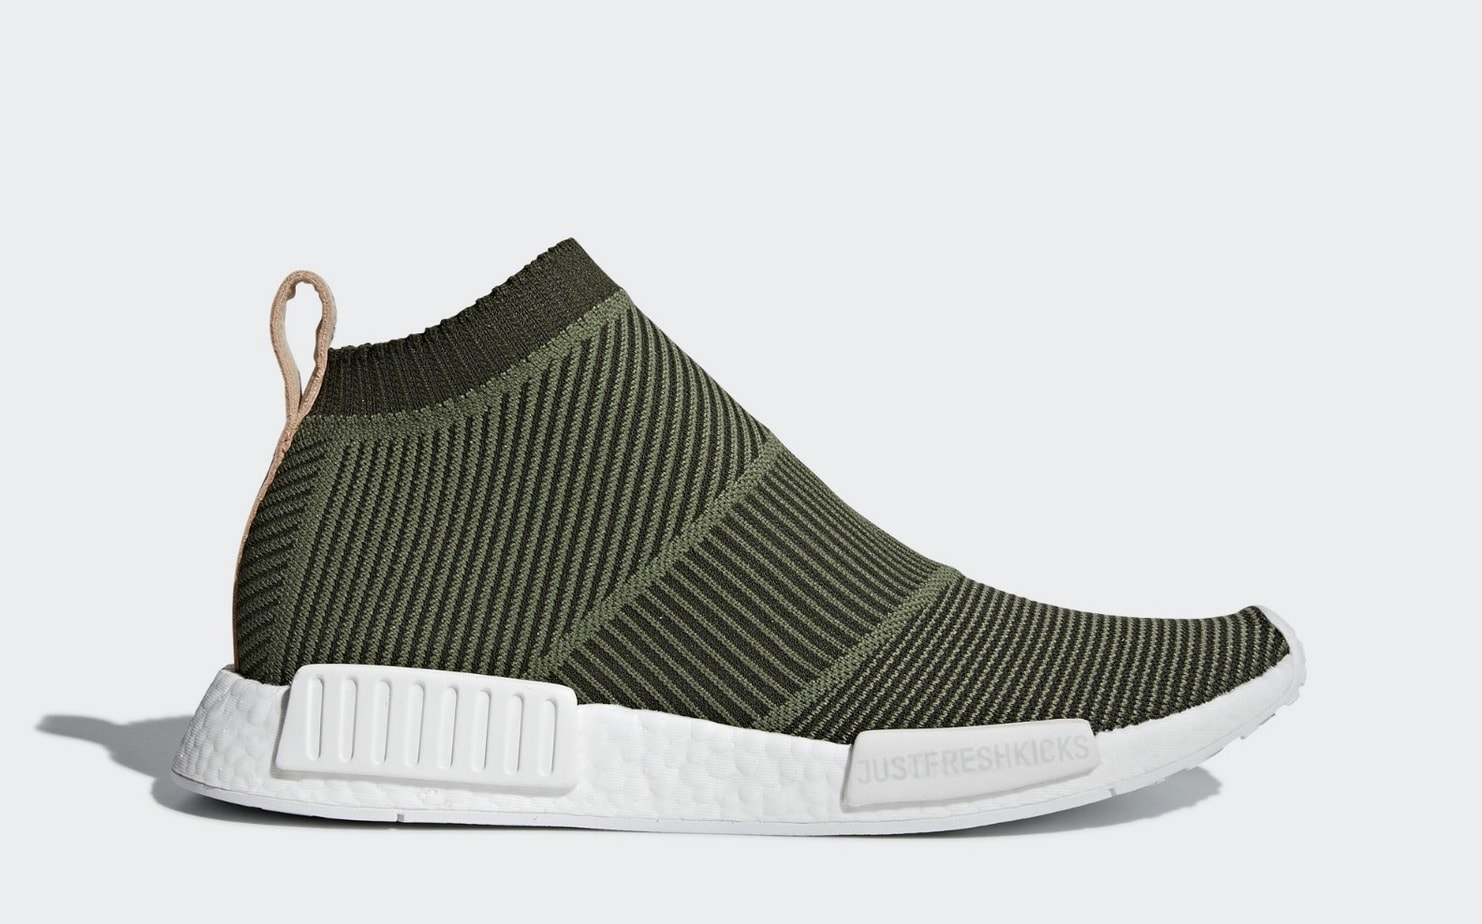 7e98a1469ccdf The adidas NMD City Sock is back. After the second iteration failed to gain  similar traction to the first